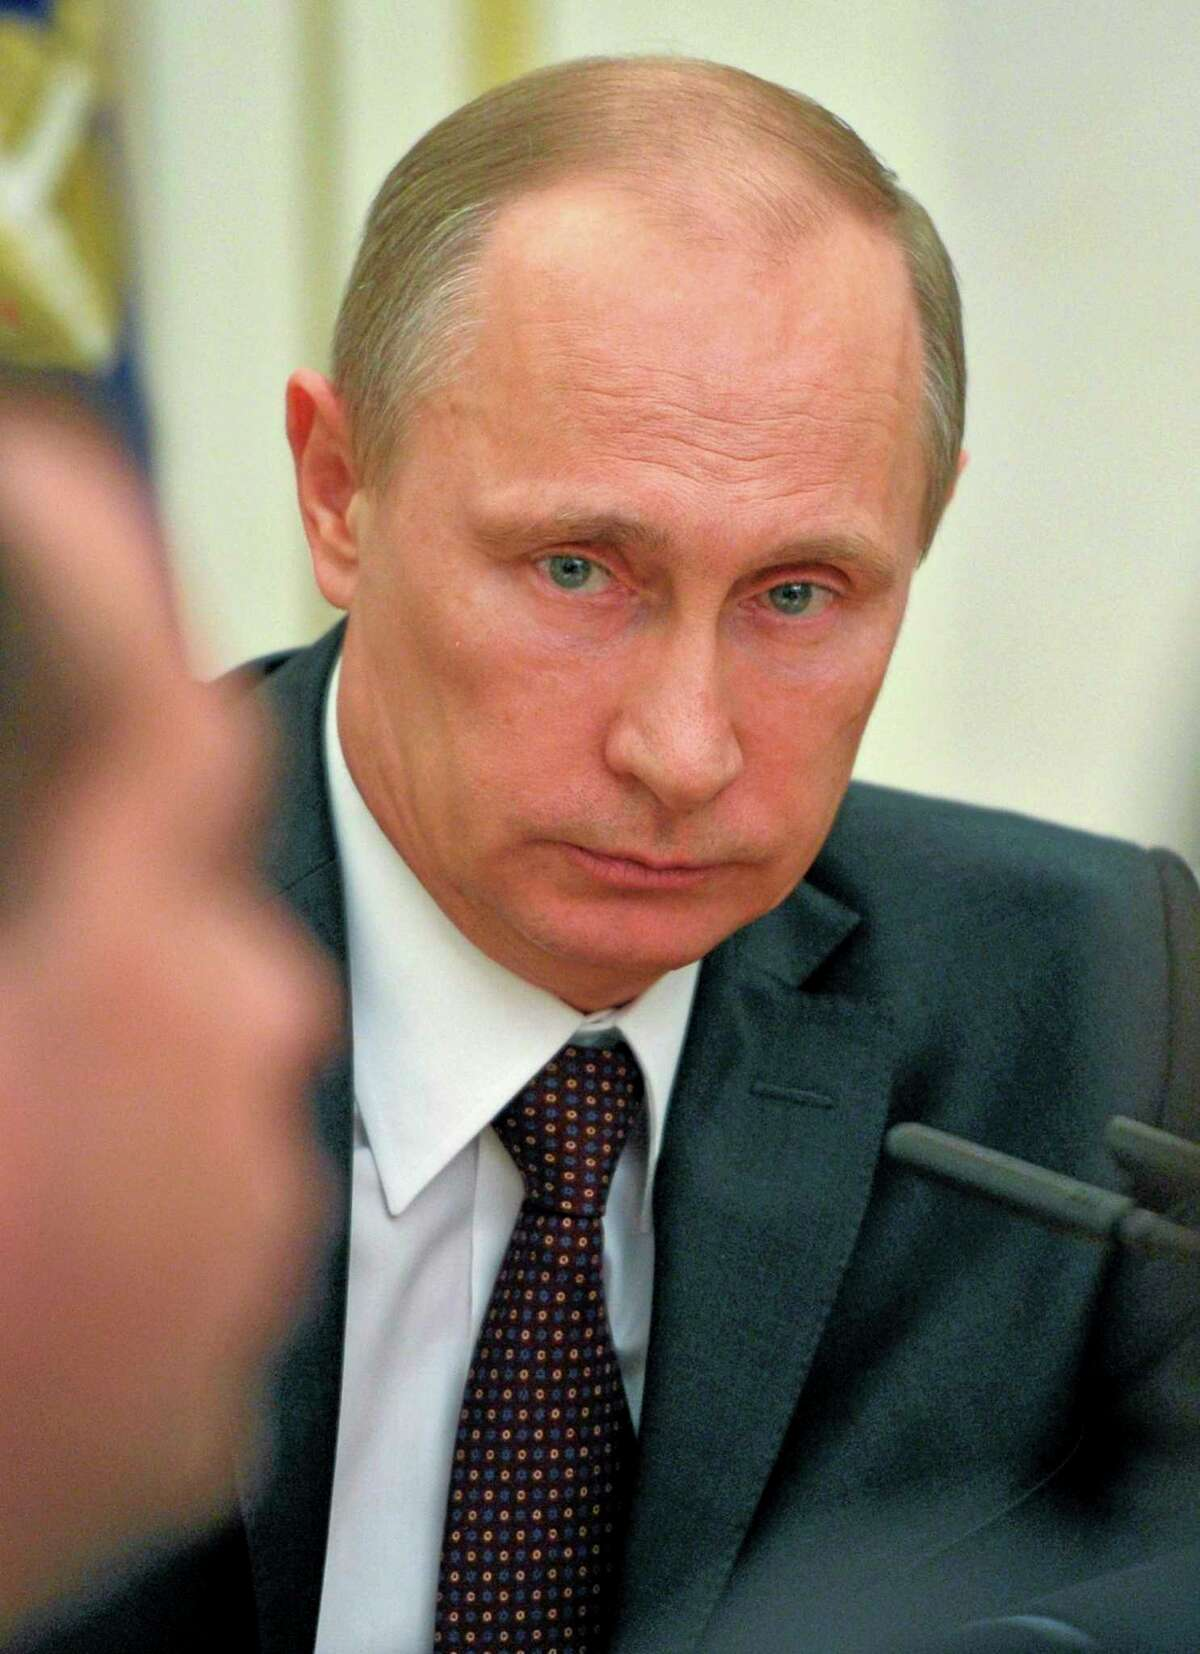 Russian President Vladimir Putin chairs a meeting with Security Council members in the Kremlin in Moscow, Russia, Friday. There is no need for Russia to further retaliate against U.S. sanctions, Putin said Friday as Russia's upper house of parliament endorsed the annexation of Crimea from Ukraine.